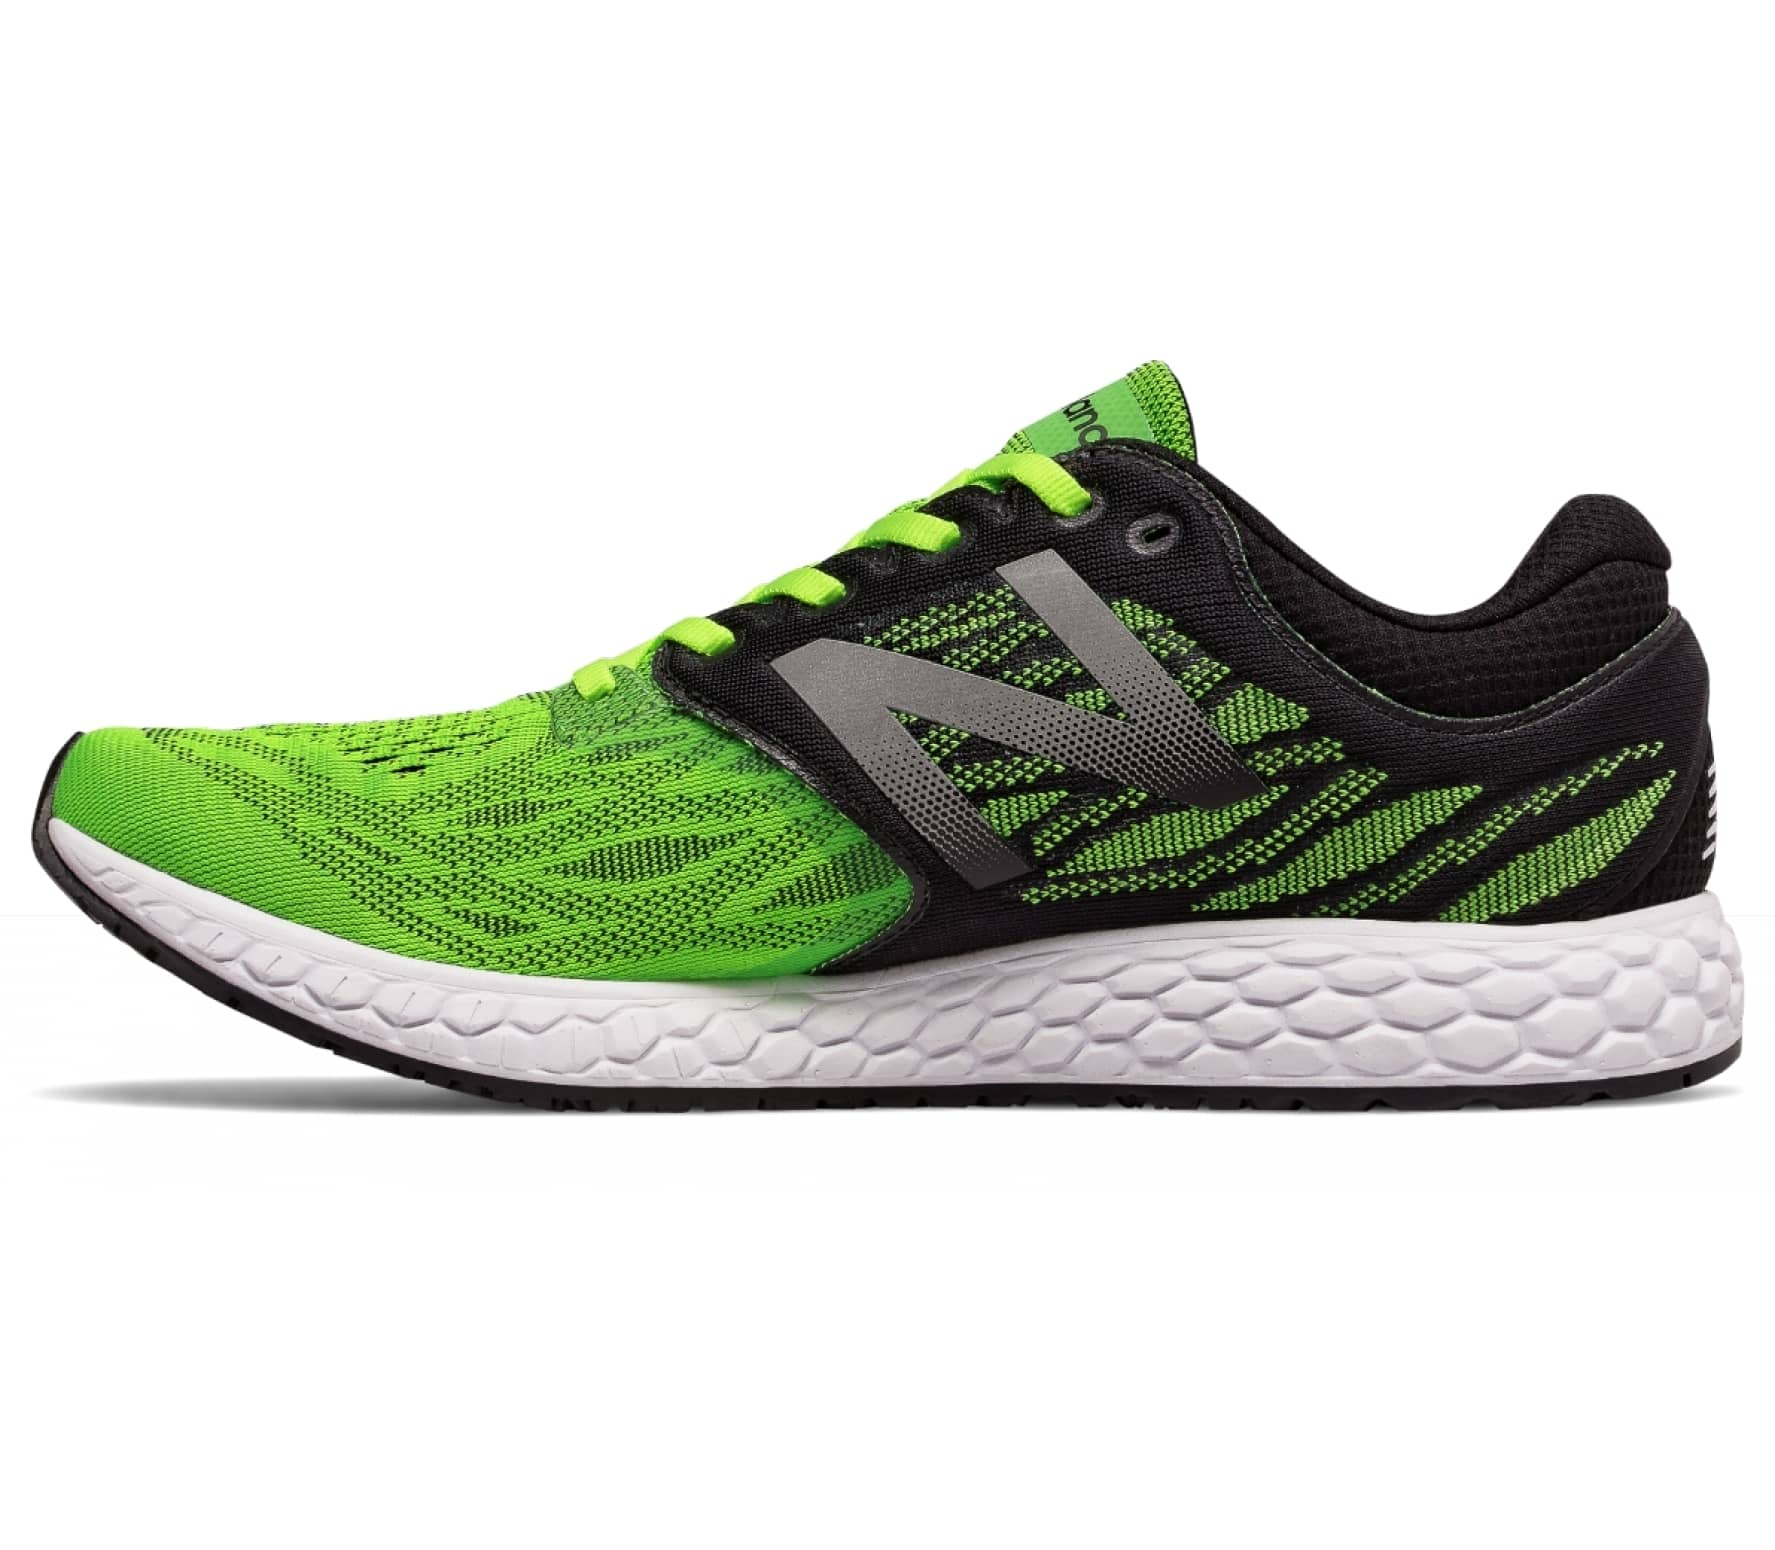 new style c68cb f4ddc New Balance - Fresh Foam Zante v3 men s running shoes (green black)